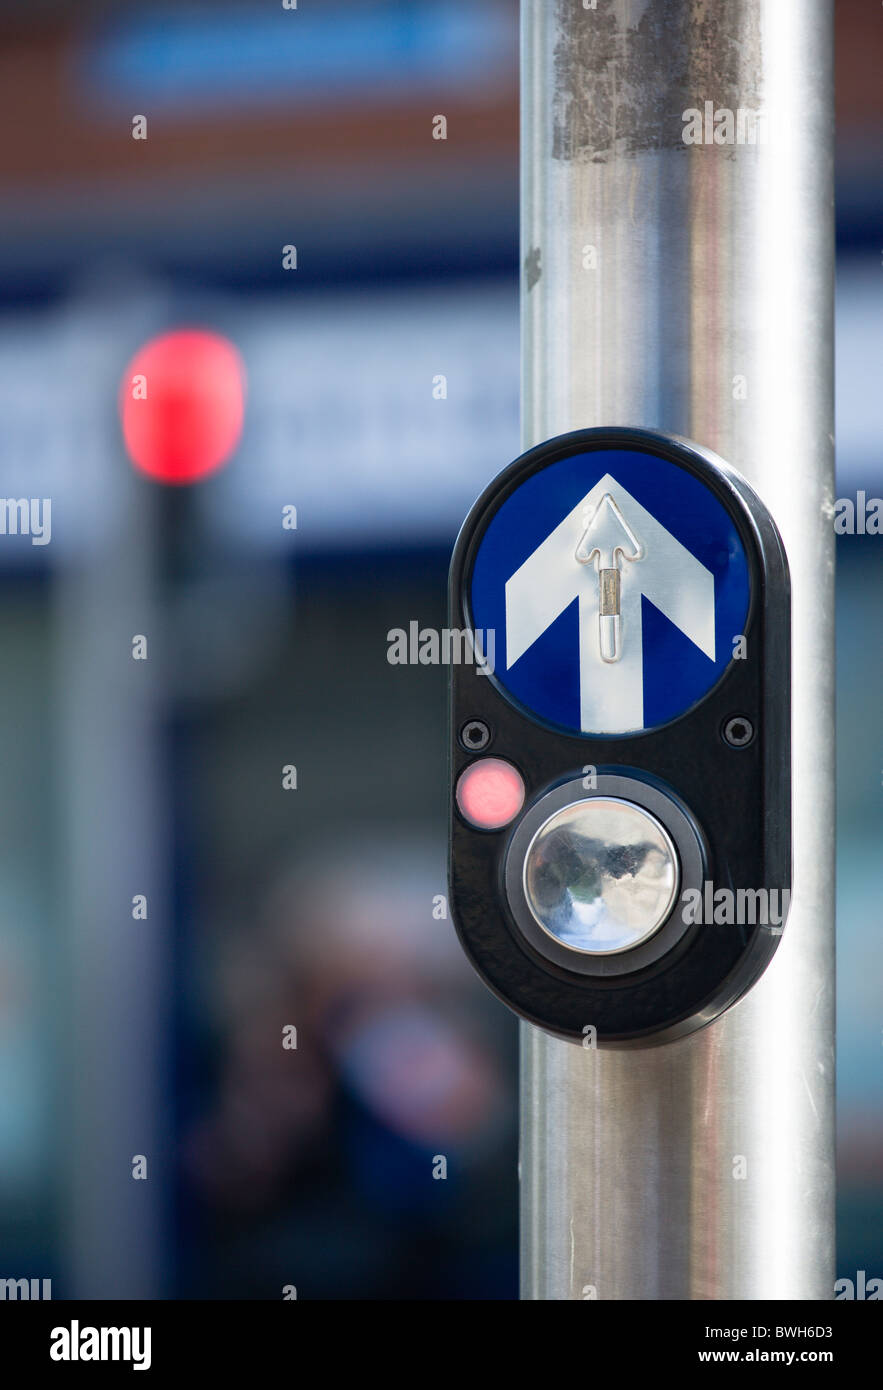 Ireland, County Dublin, Dublin City, Traffic light controlled pedestrian crossing button with halt red light and - Stock Image